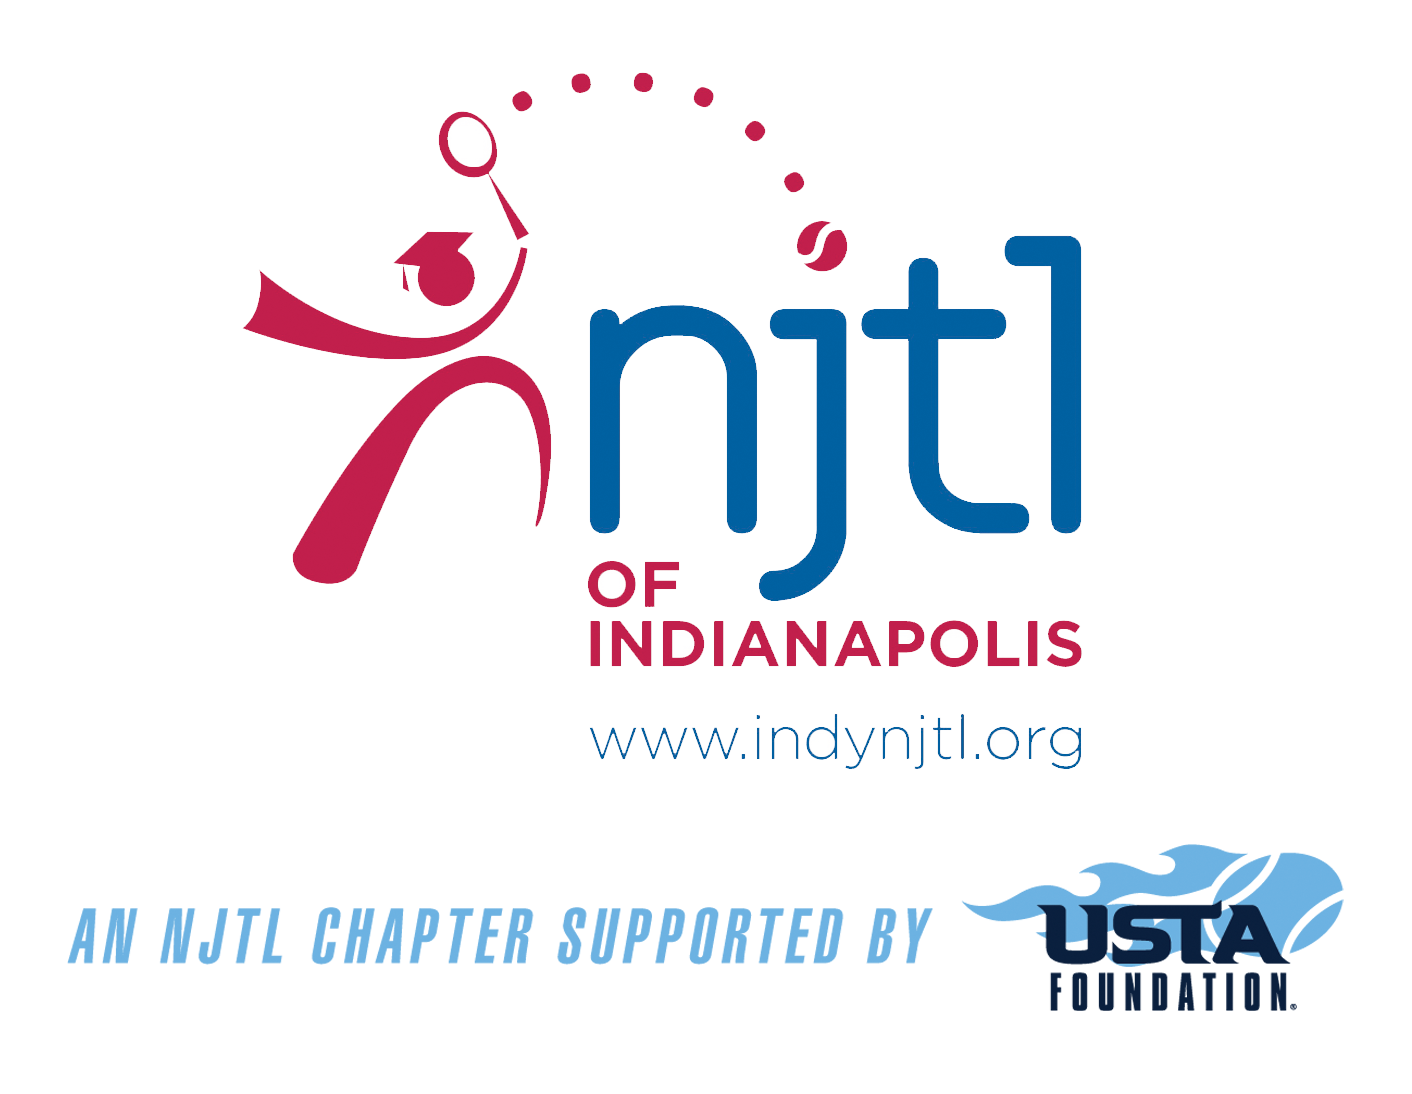 njtl-of-indianopolis